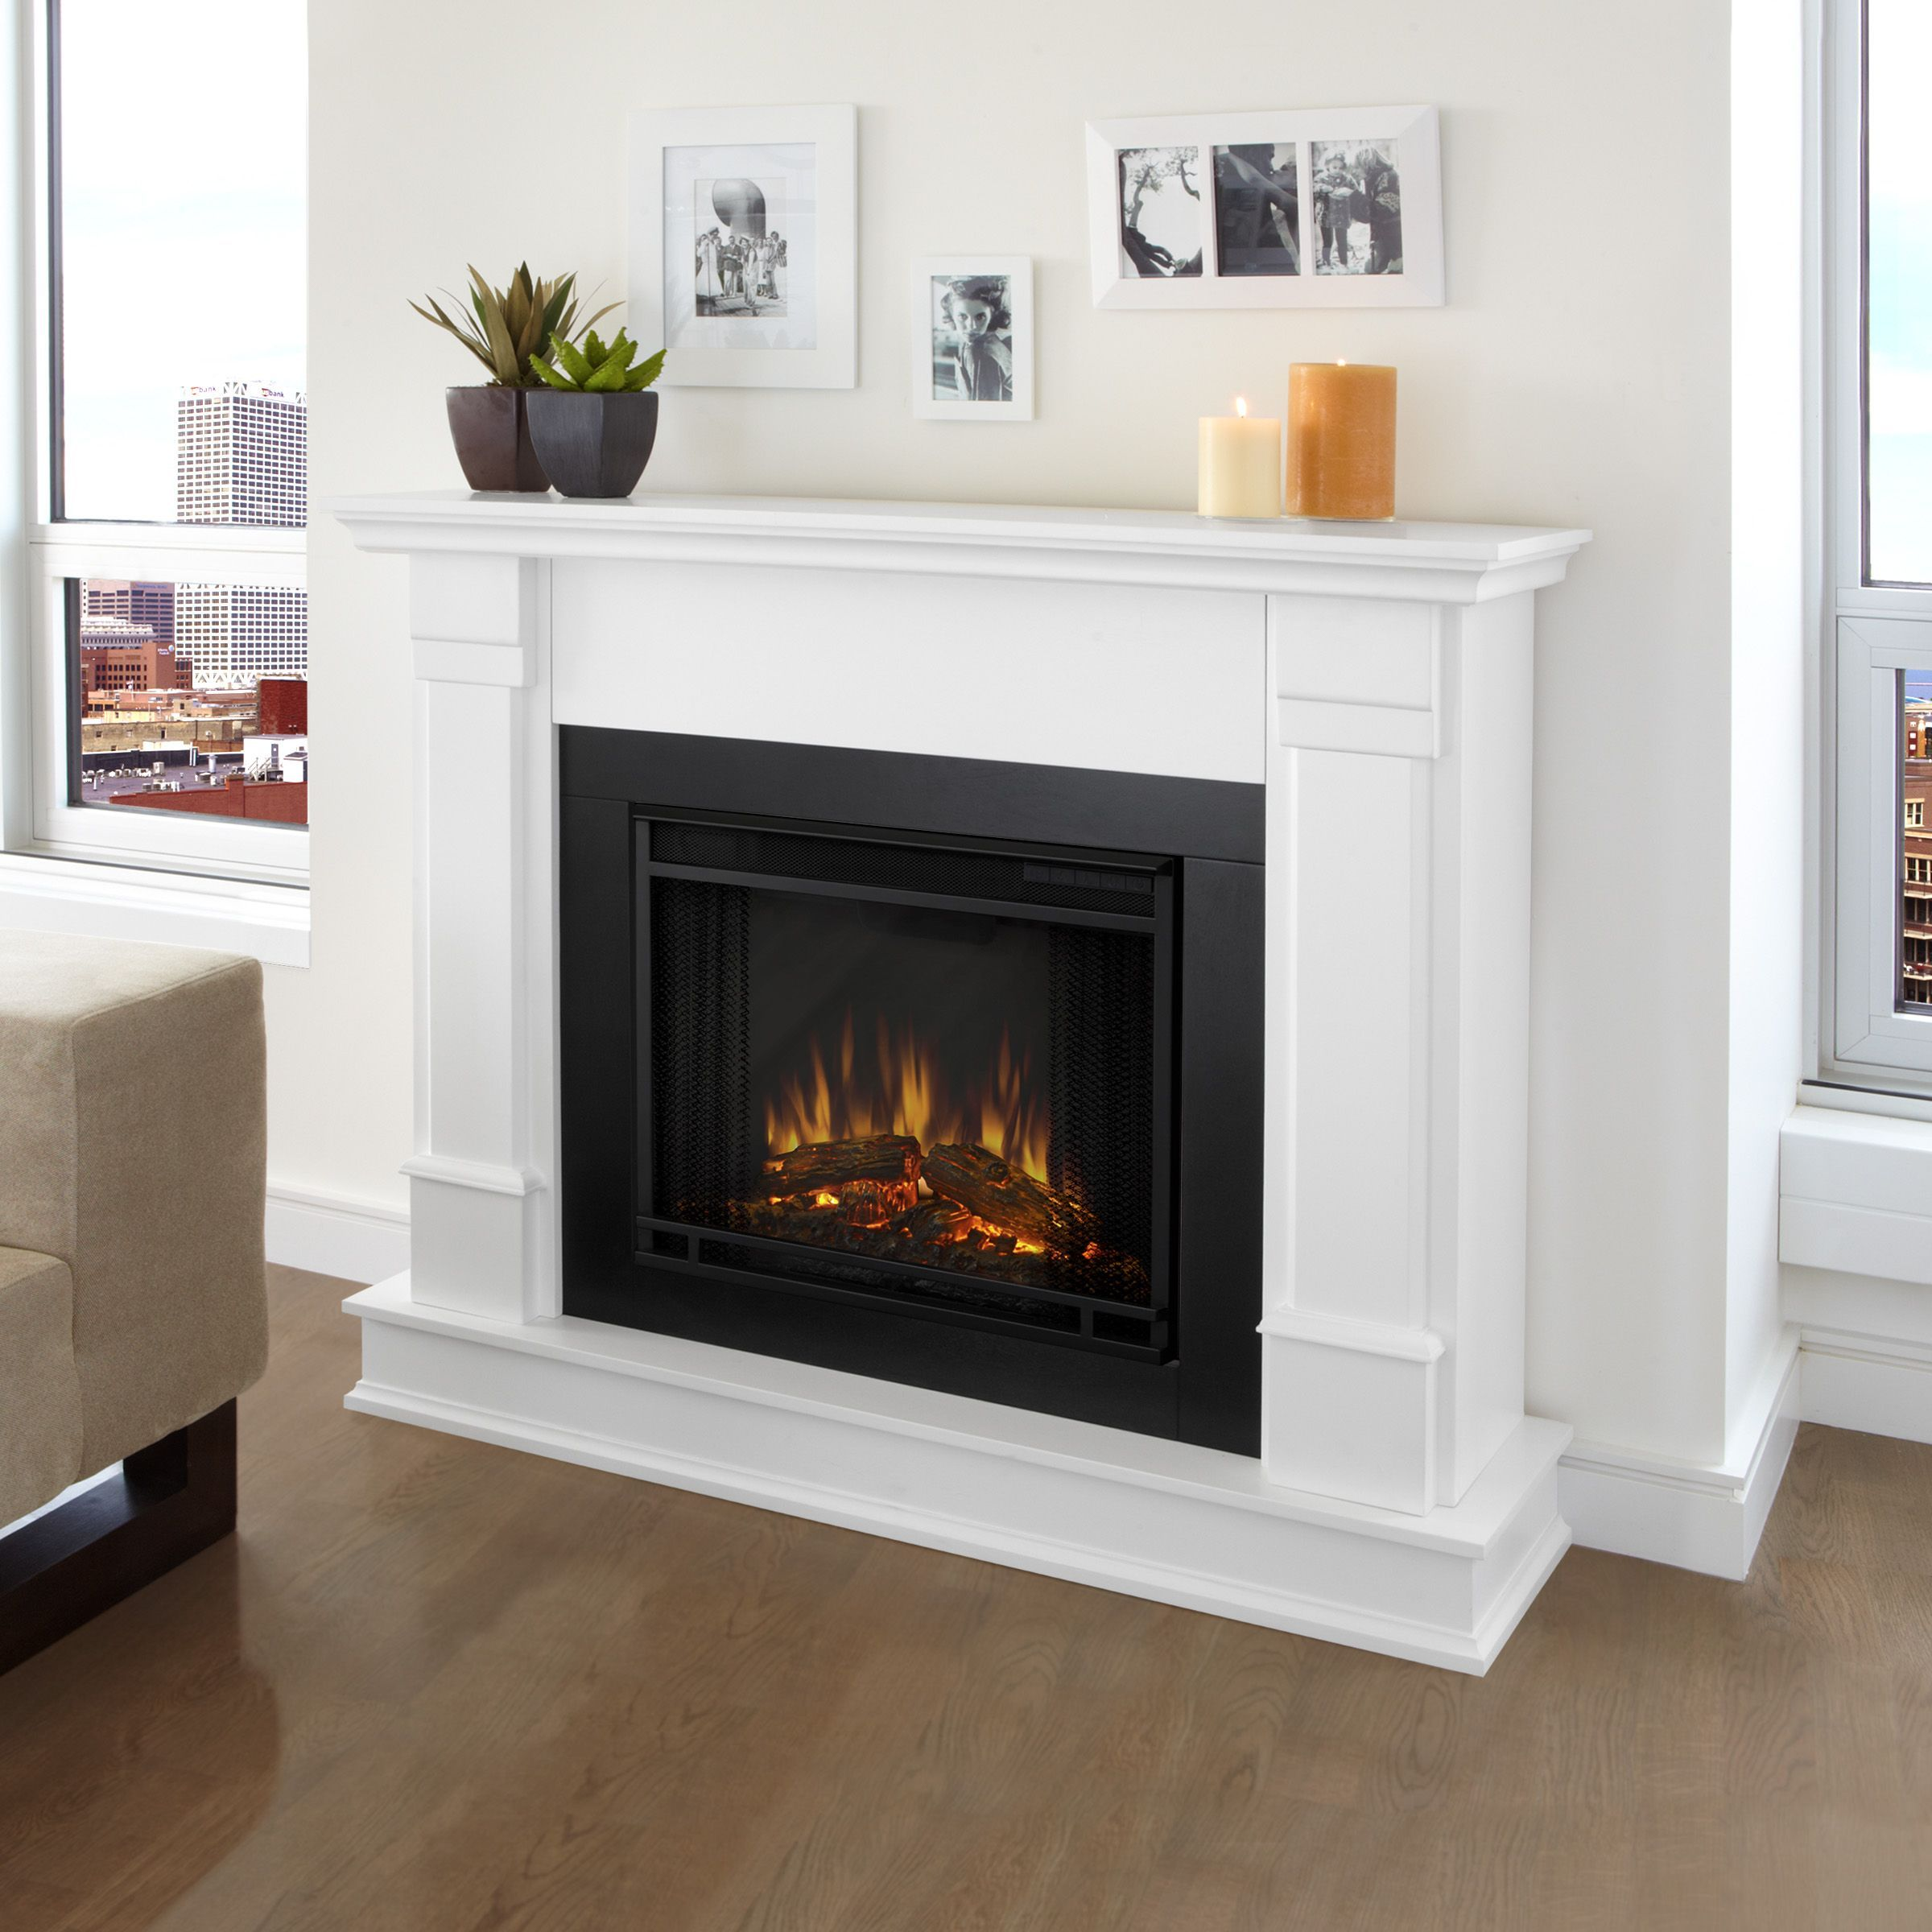 Silverton Electric Fireplace White By Real Flame 48lx13wx41h Gel Fireplace Electric Fireplace Fireplace Mantels